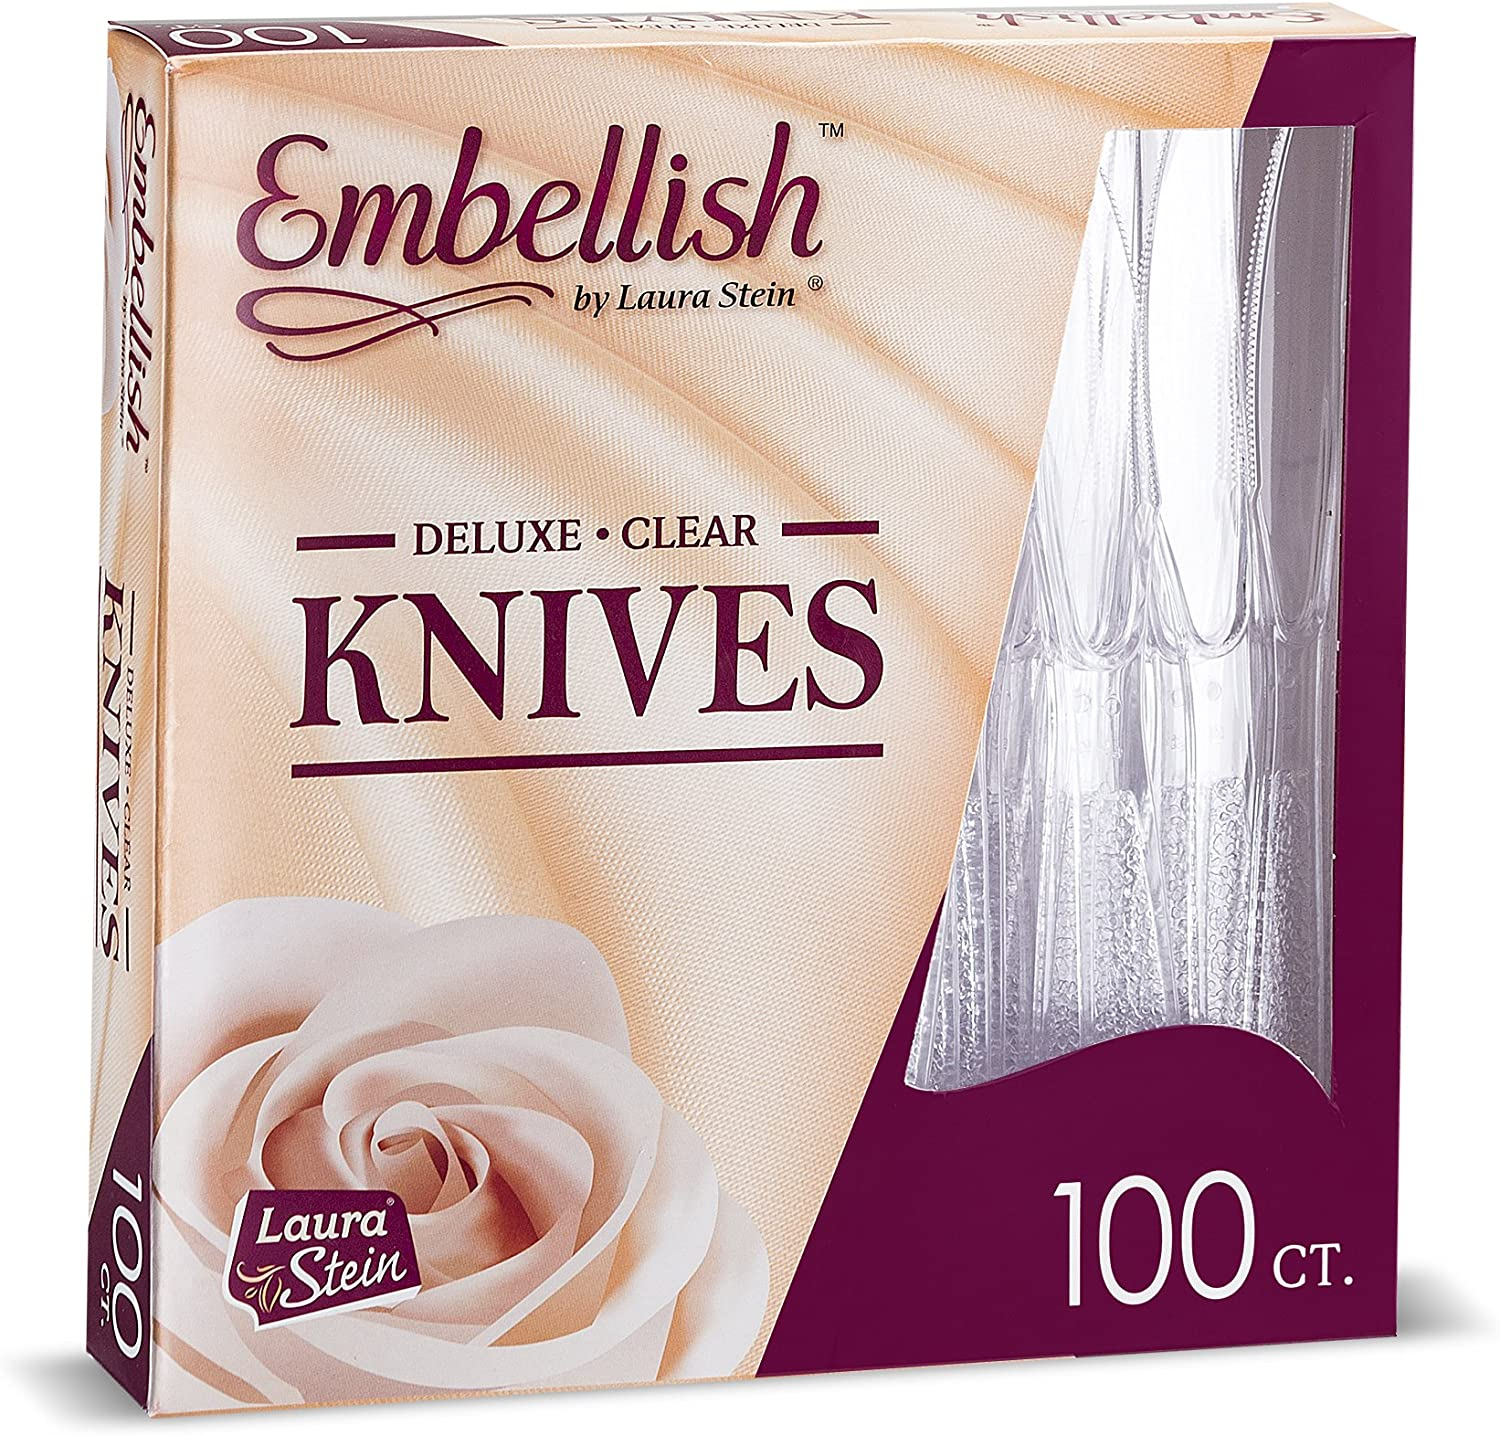 [100 Knives] Embellish Crystal Clear Disposable Heavy Duty Plastic Knife, Ideal For Wedding, Catering, Parties, Buffets, Events, Or Everyday Use,